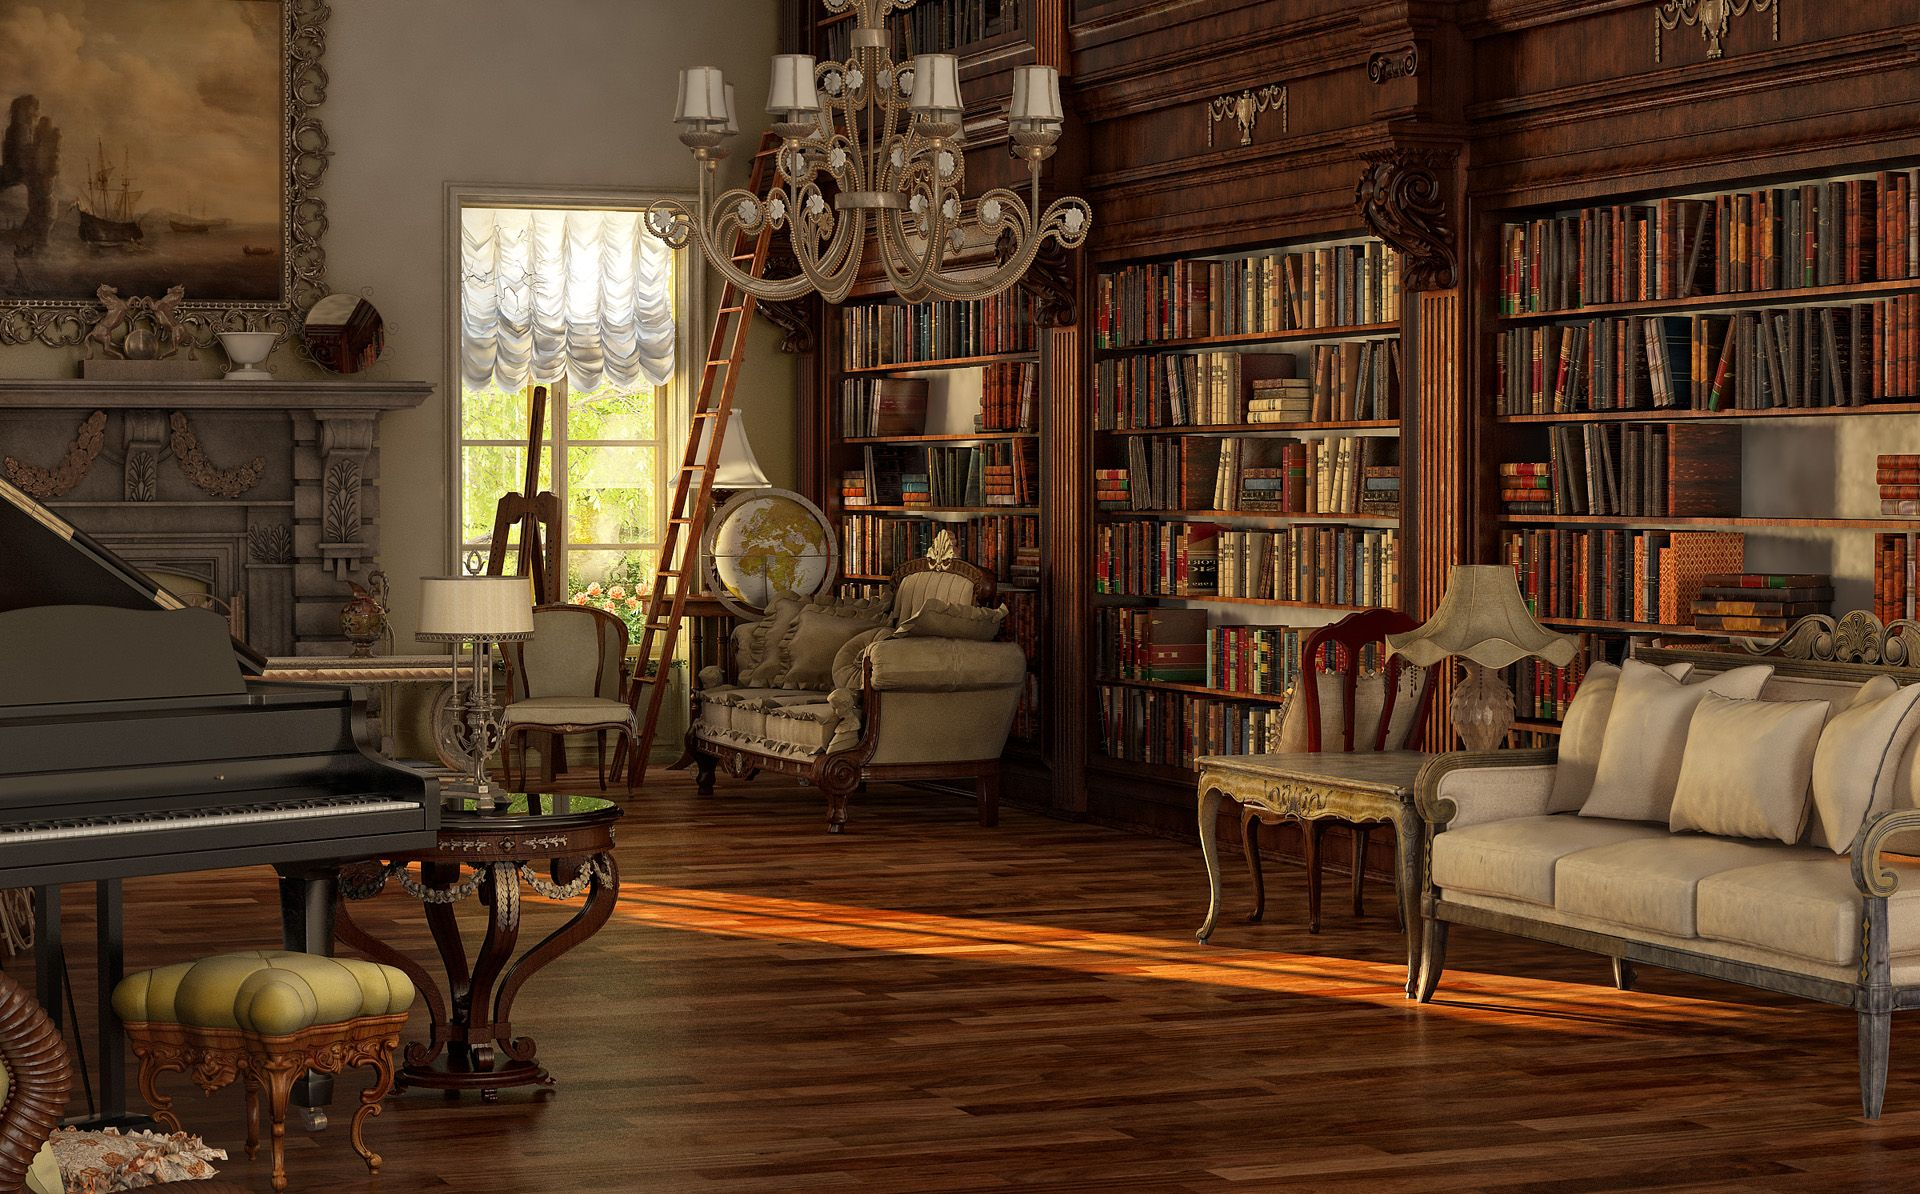 Victorian decor living room - Victorian Room By Sanfranguy On Deviantart